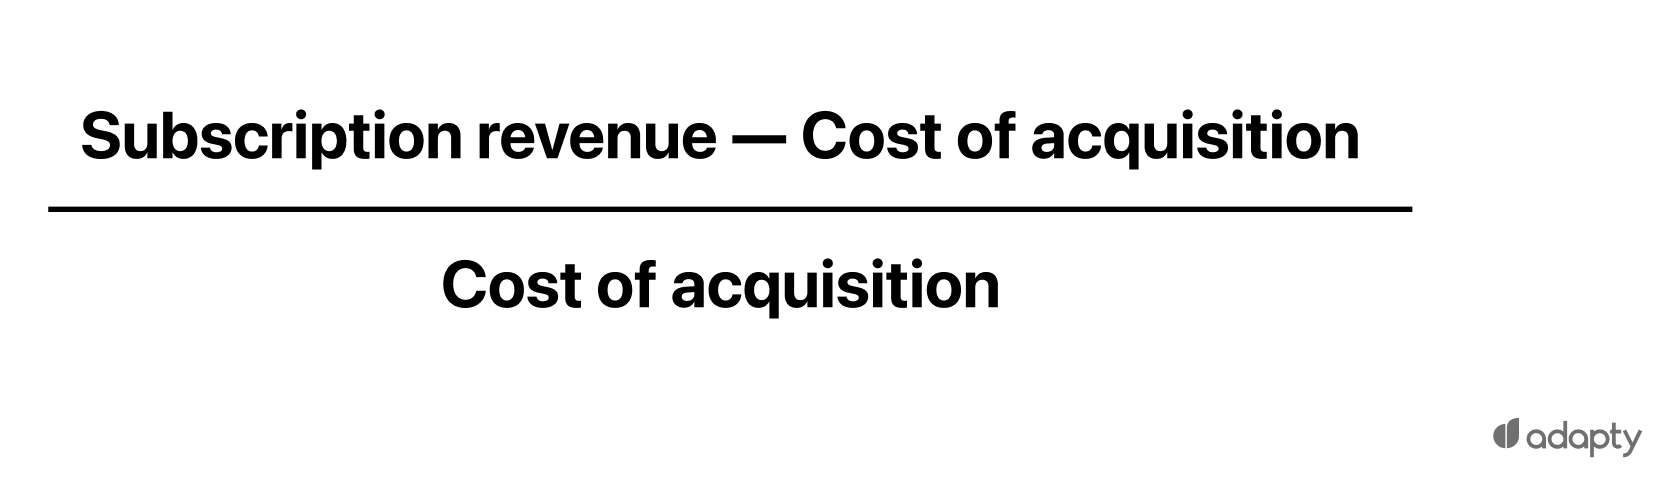 (Subscription revenue — Cost of acquisition) / (Cost of acquisition)